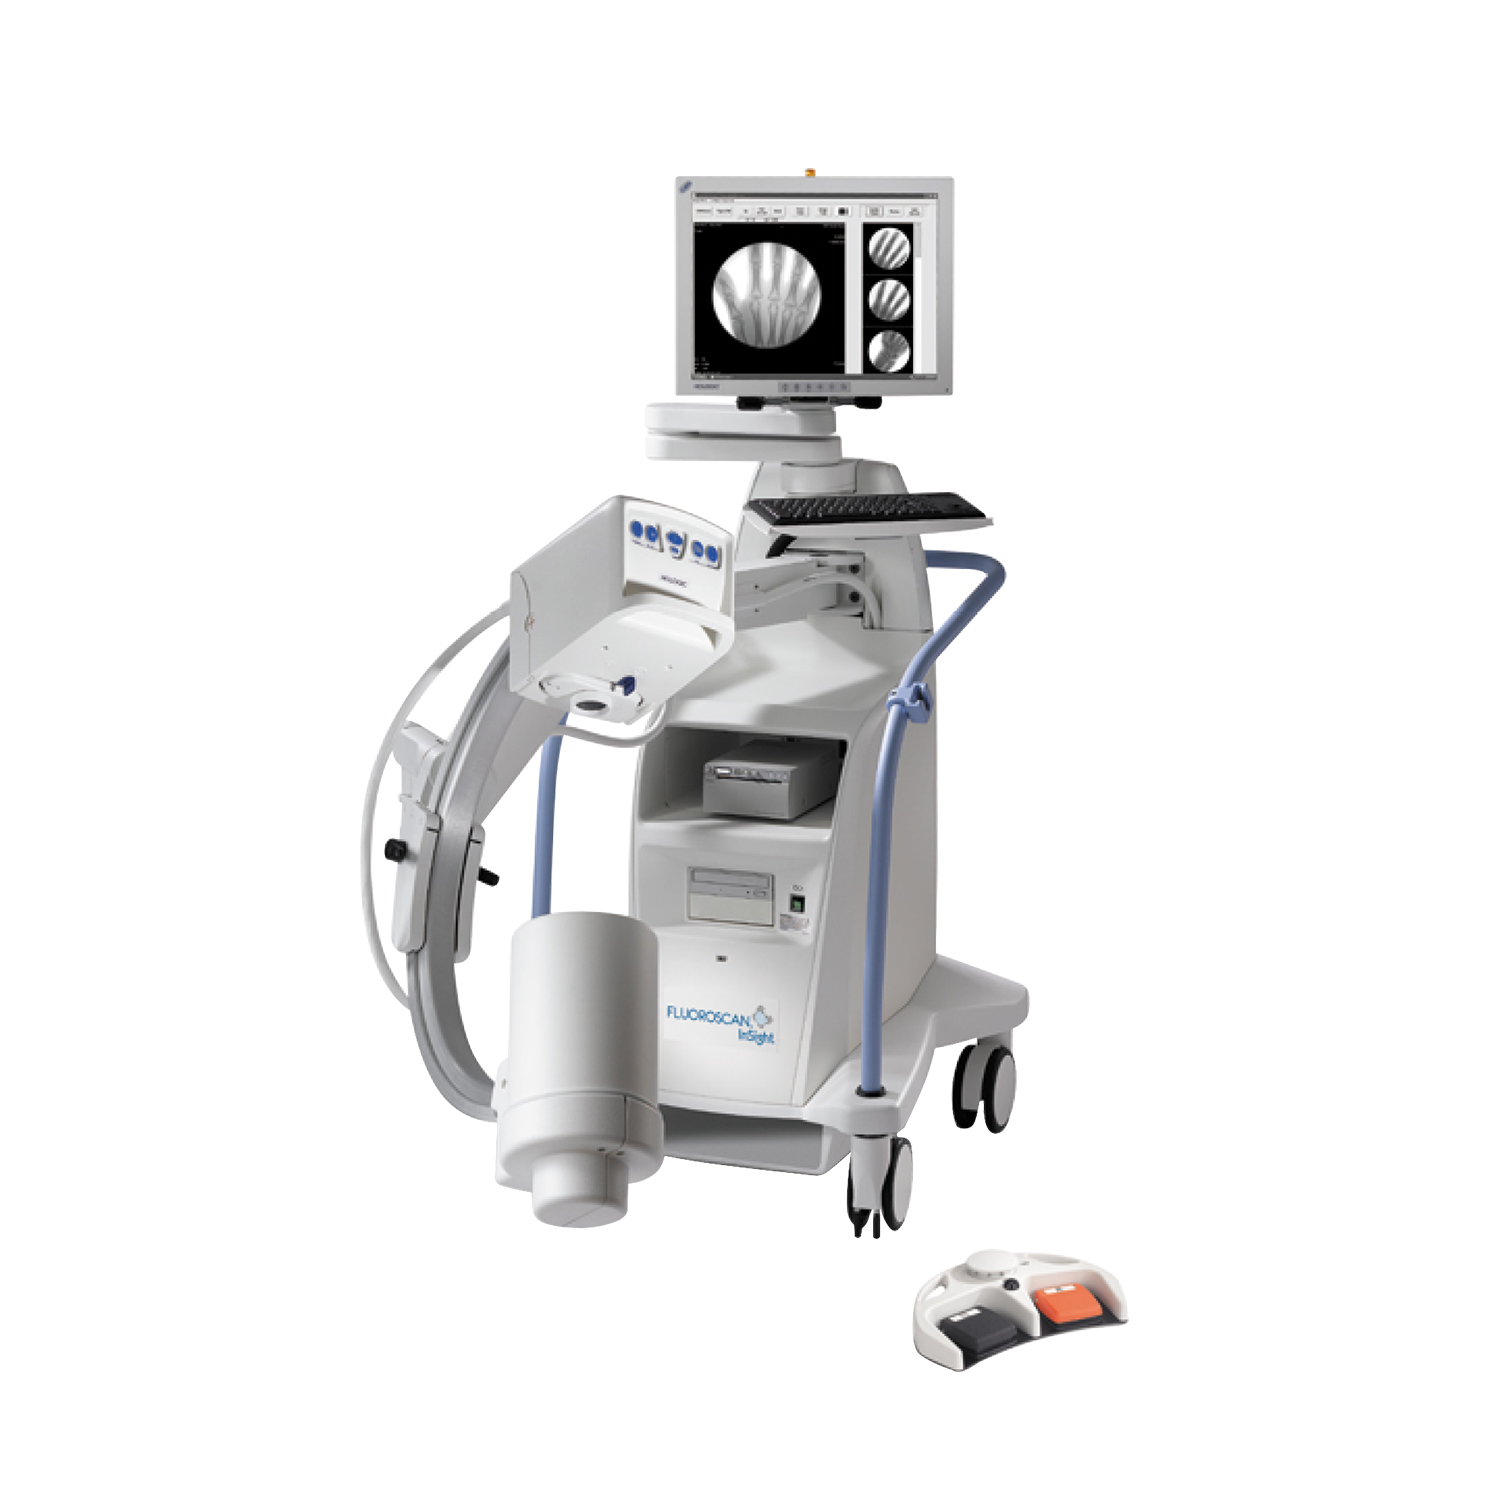 Fluoroscan Insight 2 Mini C-Arm System